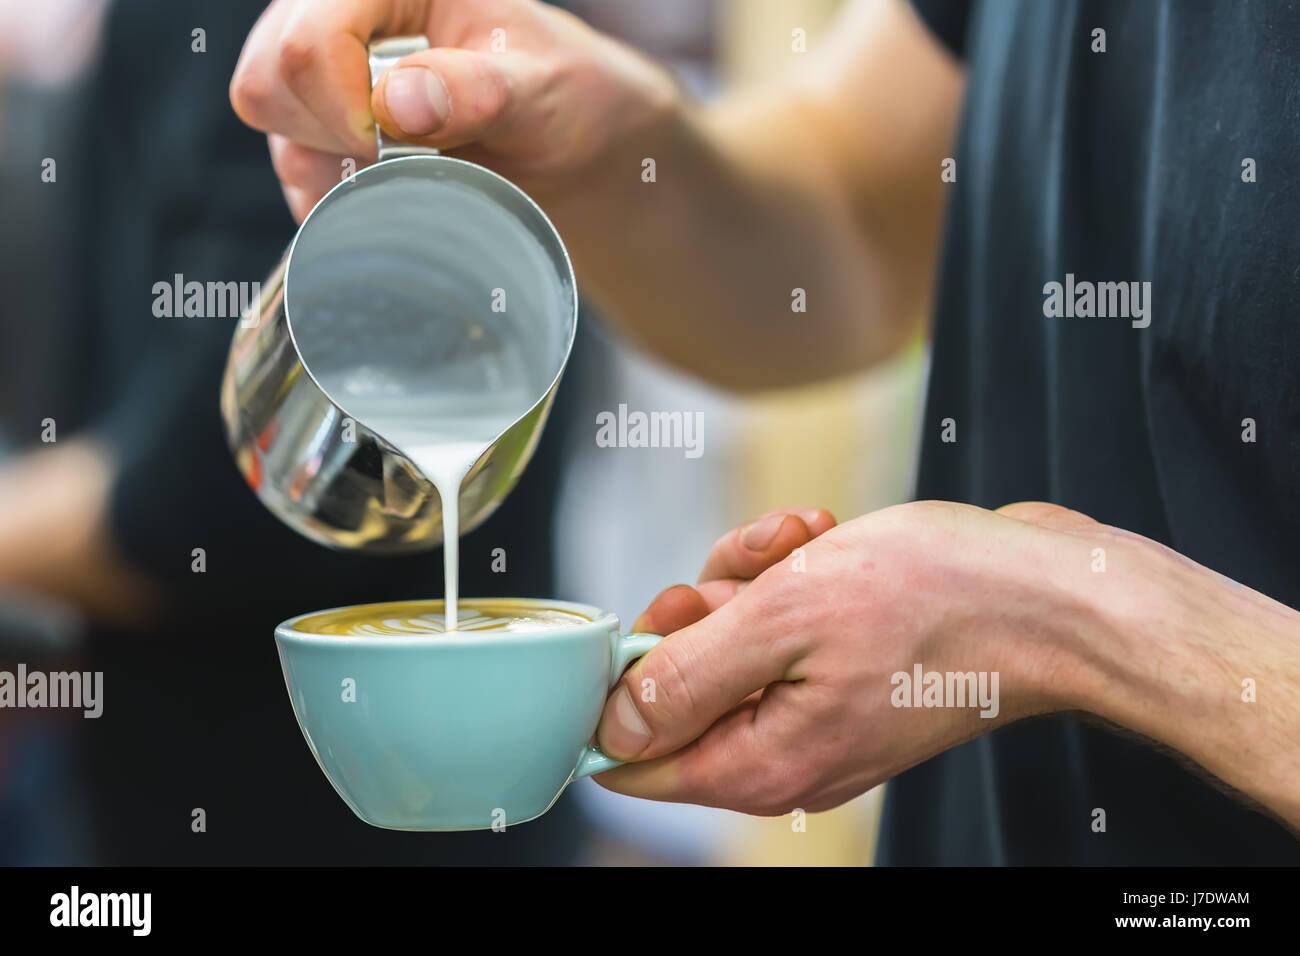 Barista in coffee bar preparing proper cappuccino pouring frothed milk into cup of coffee, making latte art, pattern - Stock Image